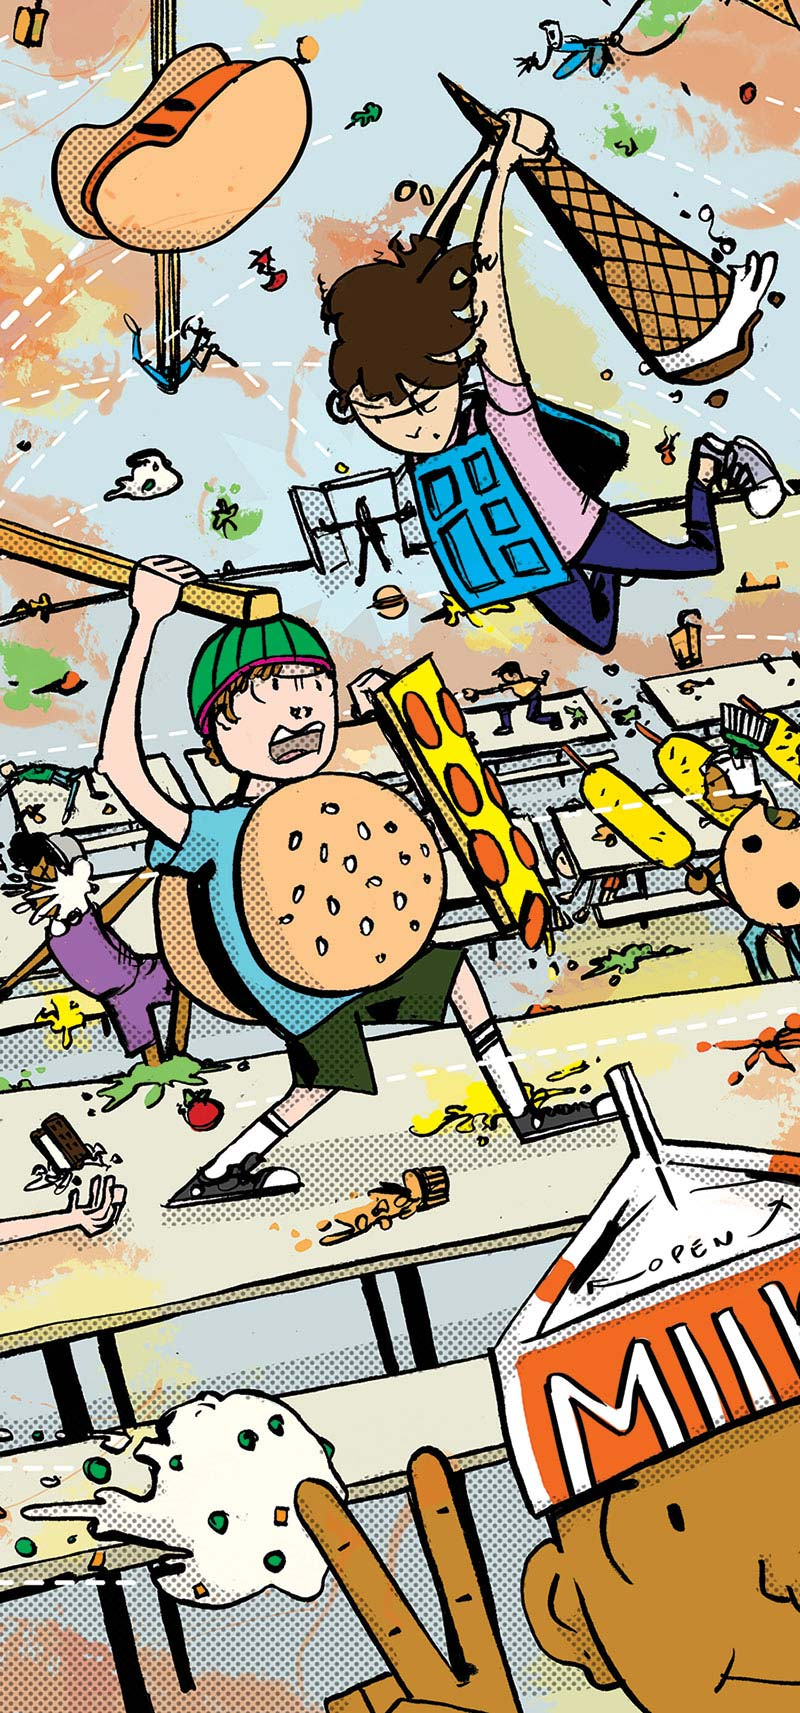 Illustration of kids wearing burger buns and lunch trays having a food fight